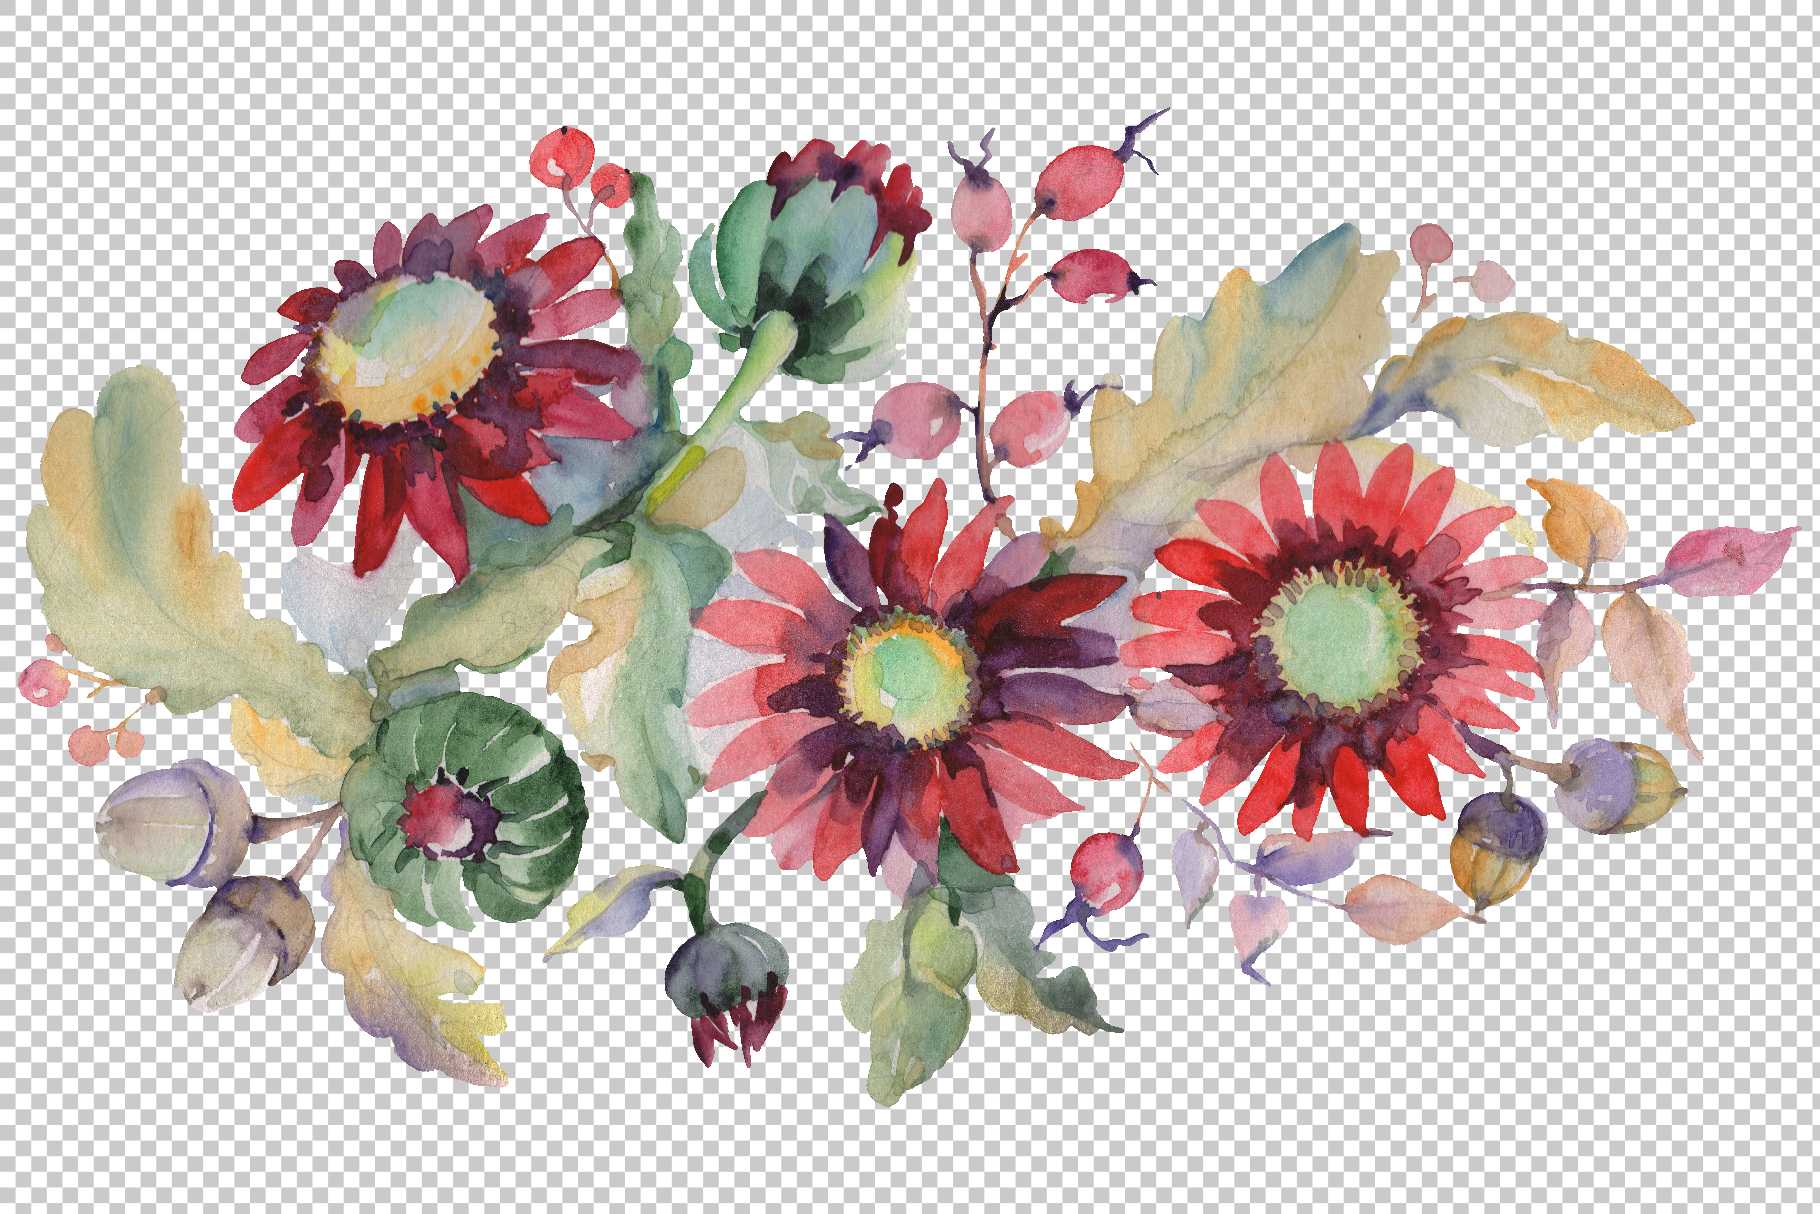 Autumn Bouquet with sunflowers Watercolor png example image 2